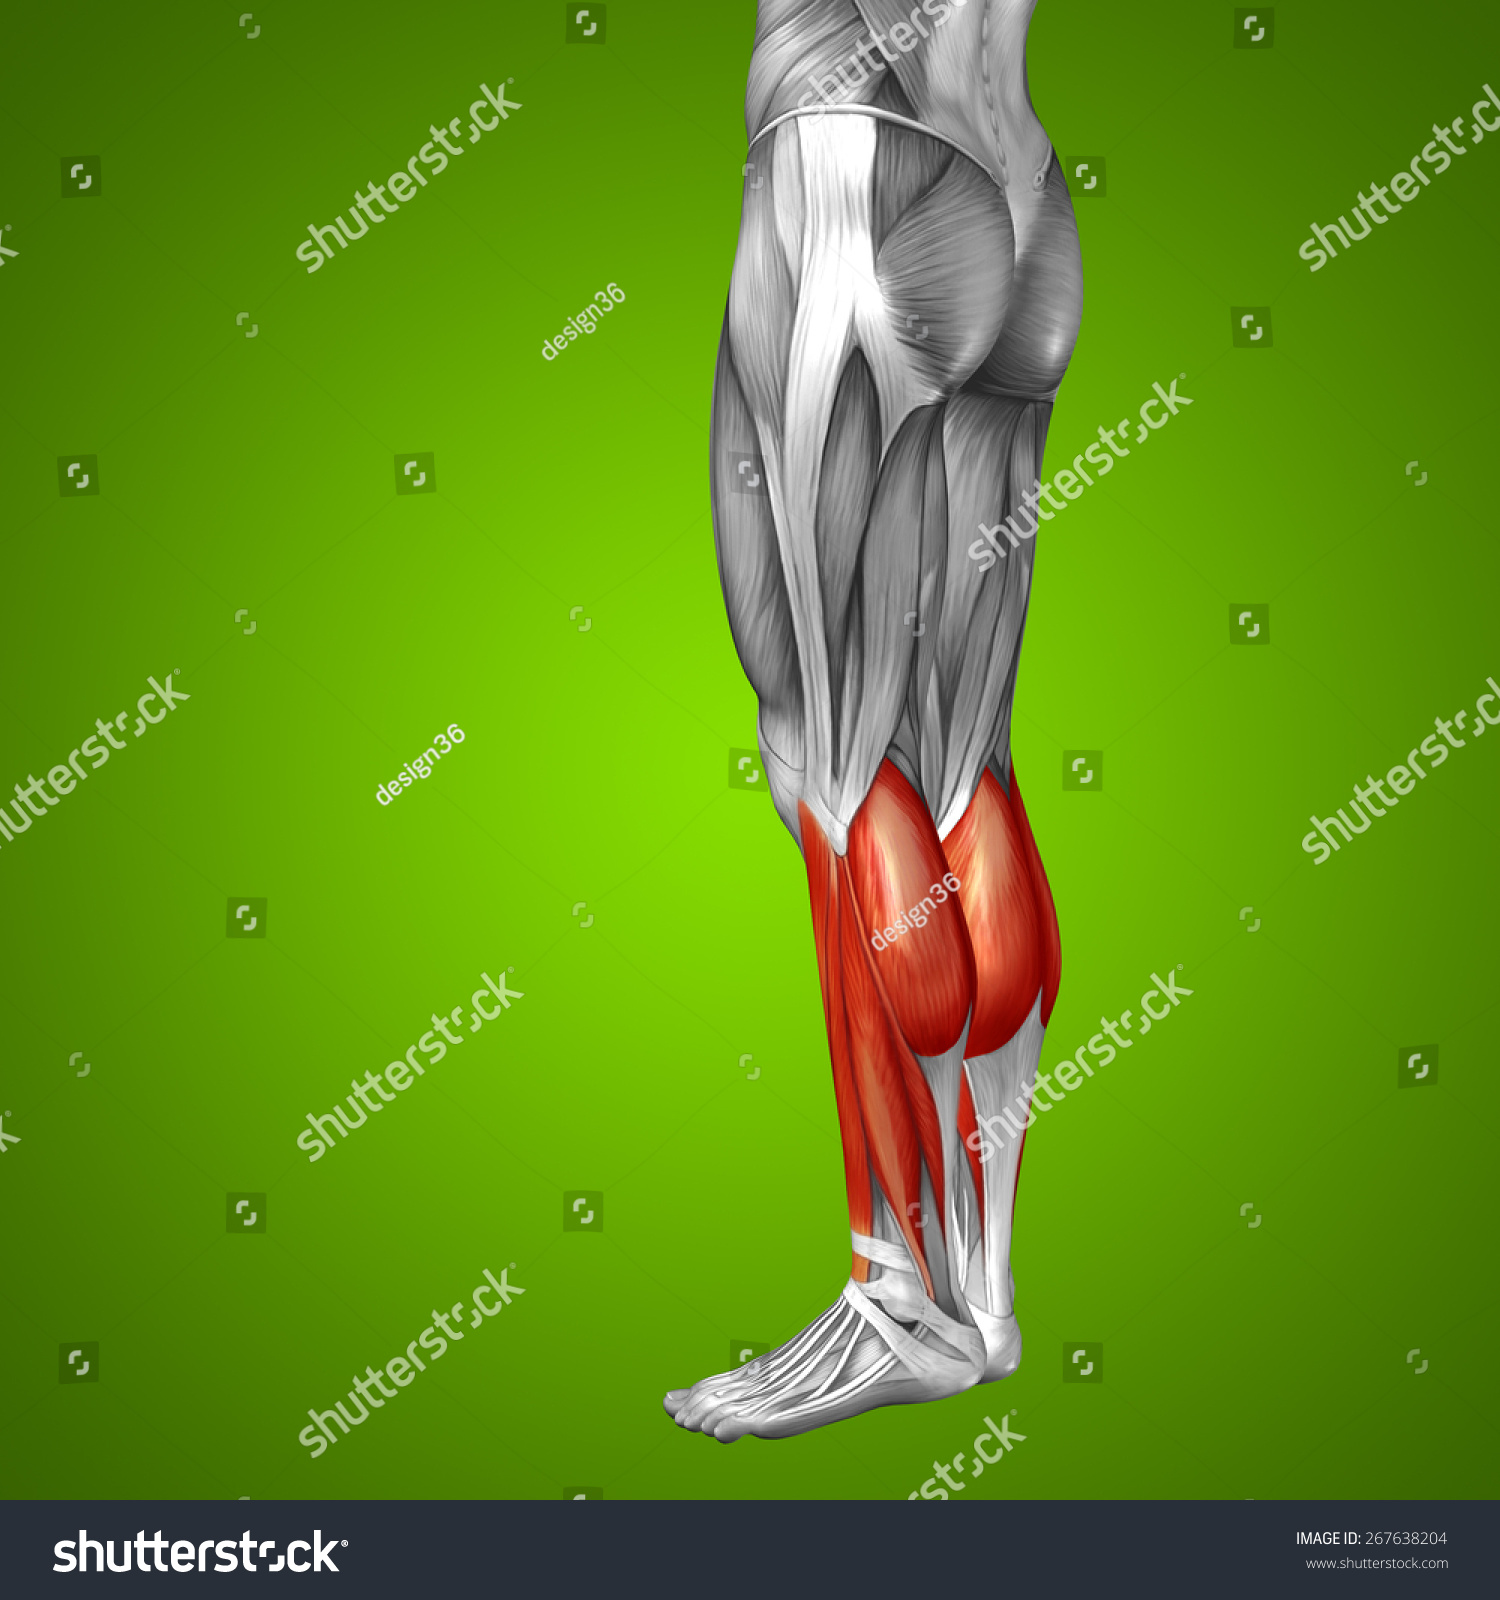 Fitness Biology: Conceptual 3d Gastrocnemius Lower Leg Human Stock